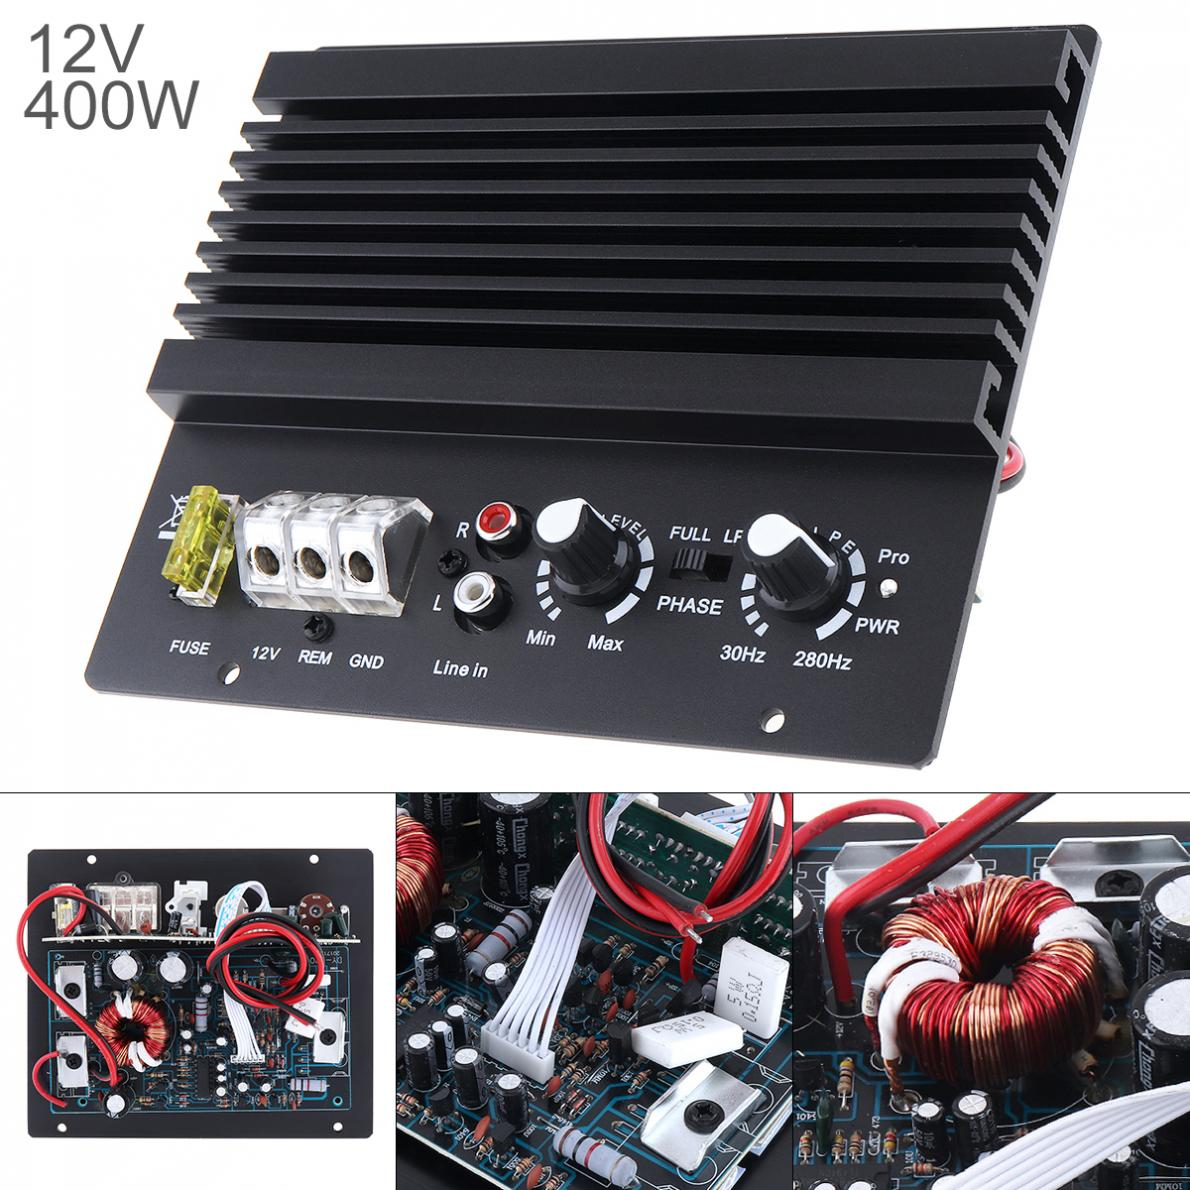 2 kanal 400W Class AB Digital Schwarz Aluminium Legierung High Power Auto Audio AMP Subwoofer Verstärker